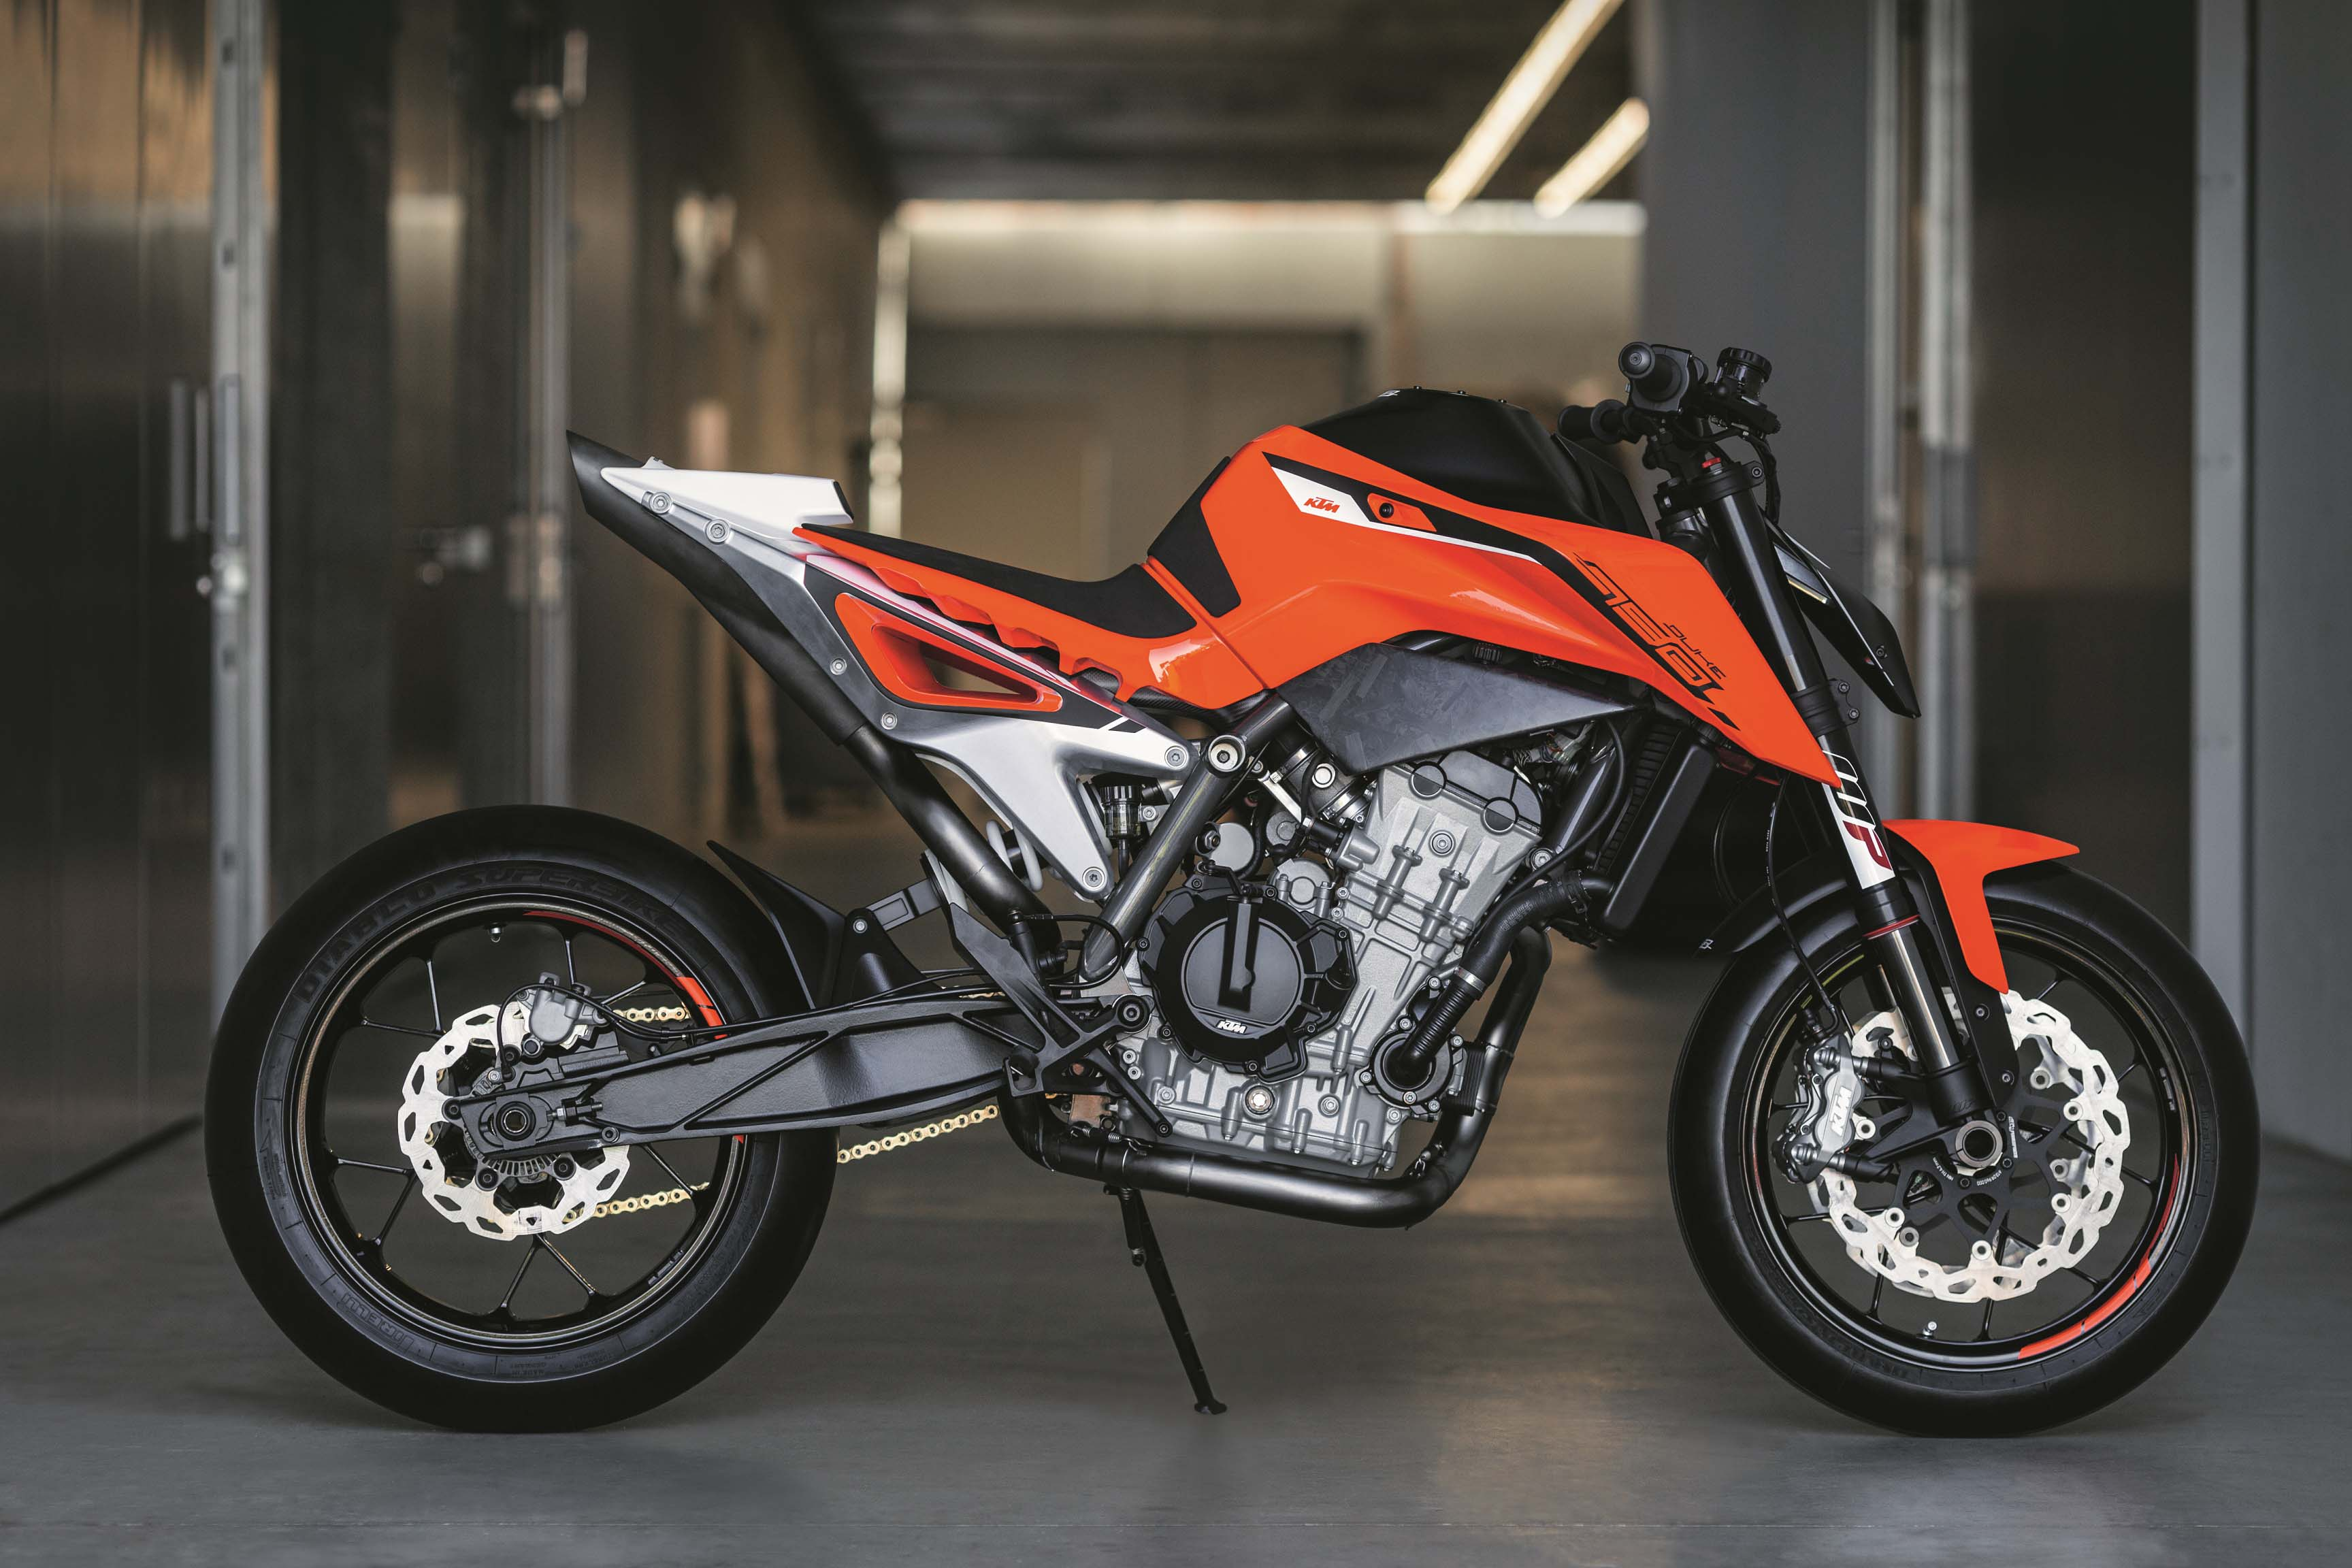 ktm 790 duke prototype debuts with parallel twin engine. Black Bedroom Furniture Sets. Home Design Ideas